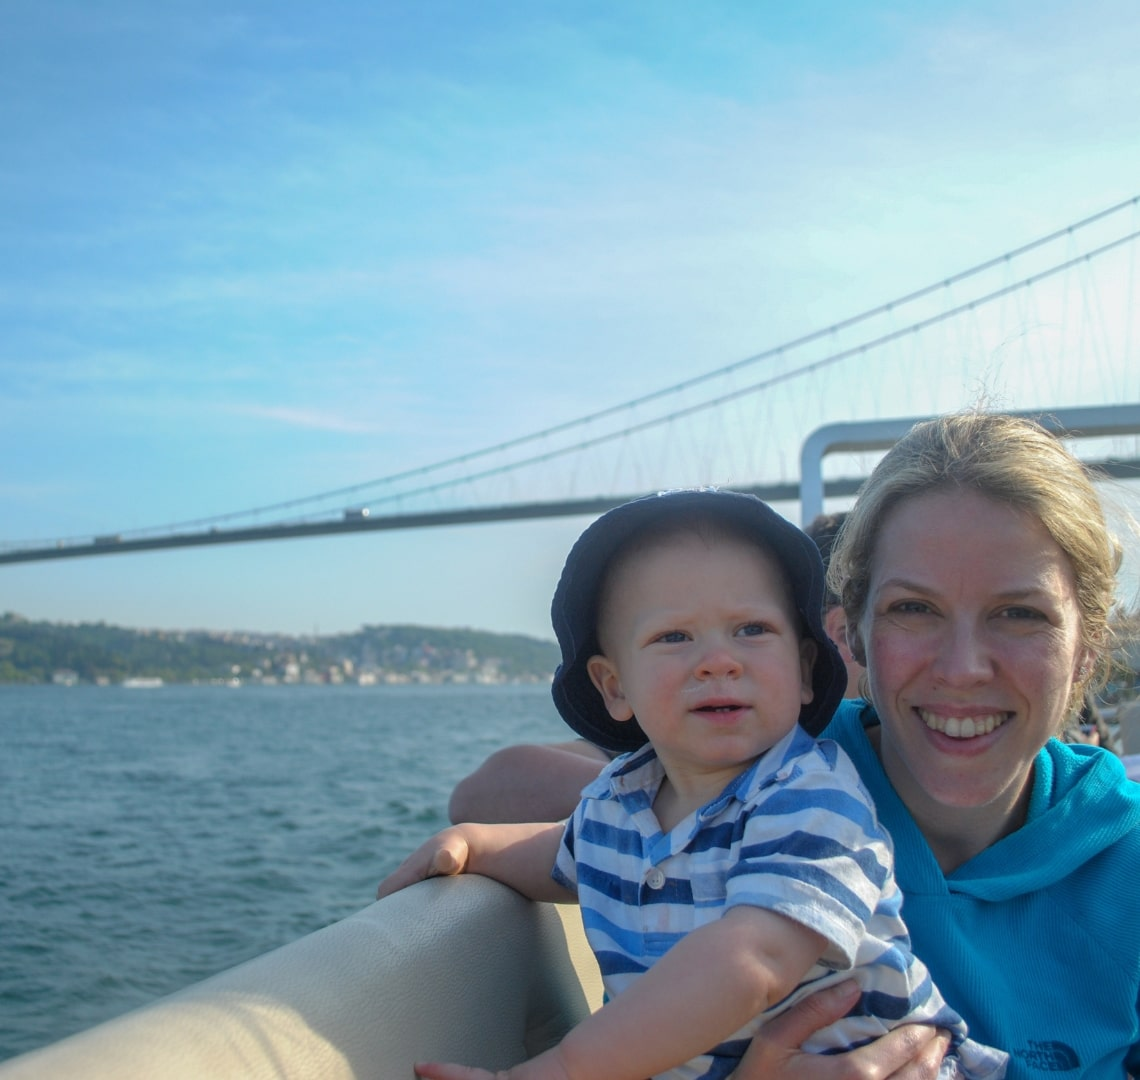 Winter Sun - me and Thing 1 on a cruise on the Bosphorus